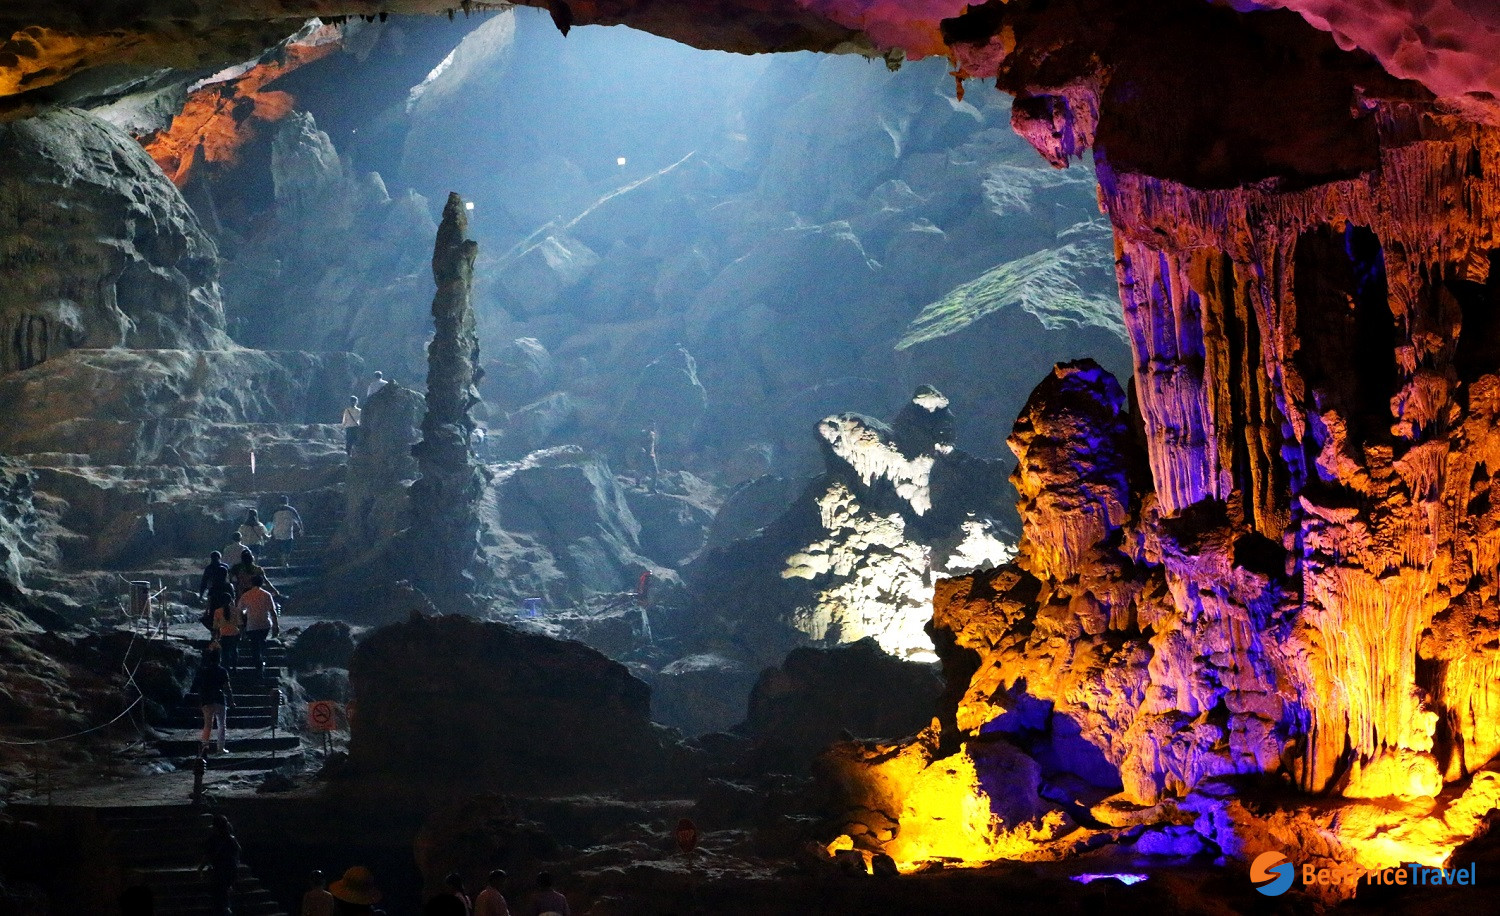 inside Tien Ong Cave